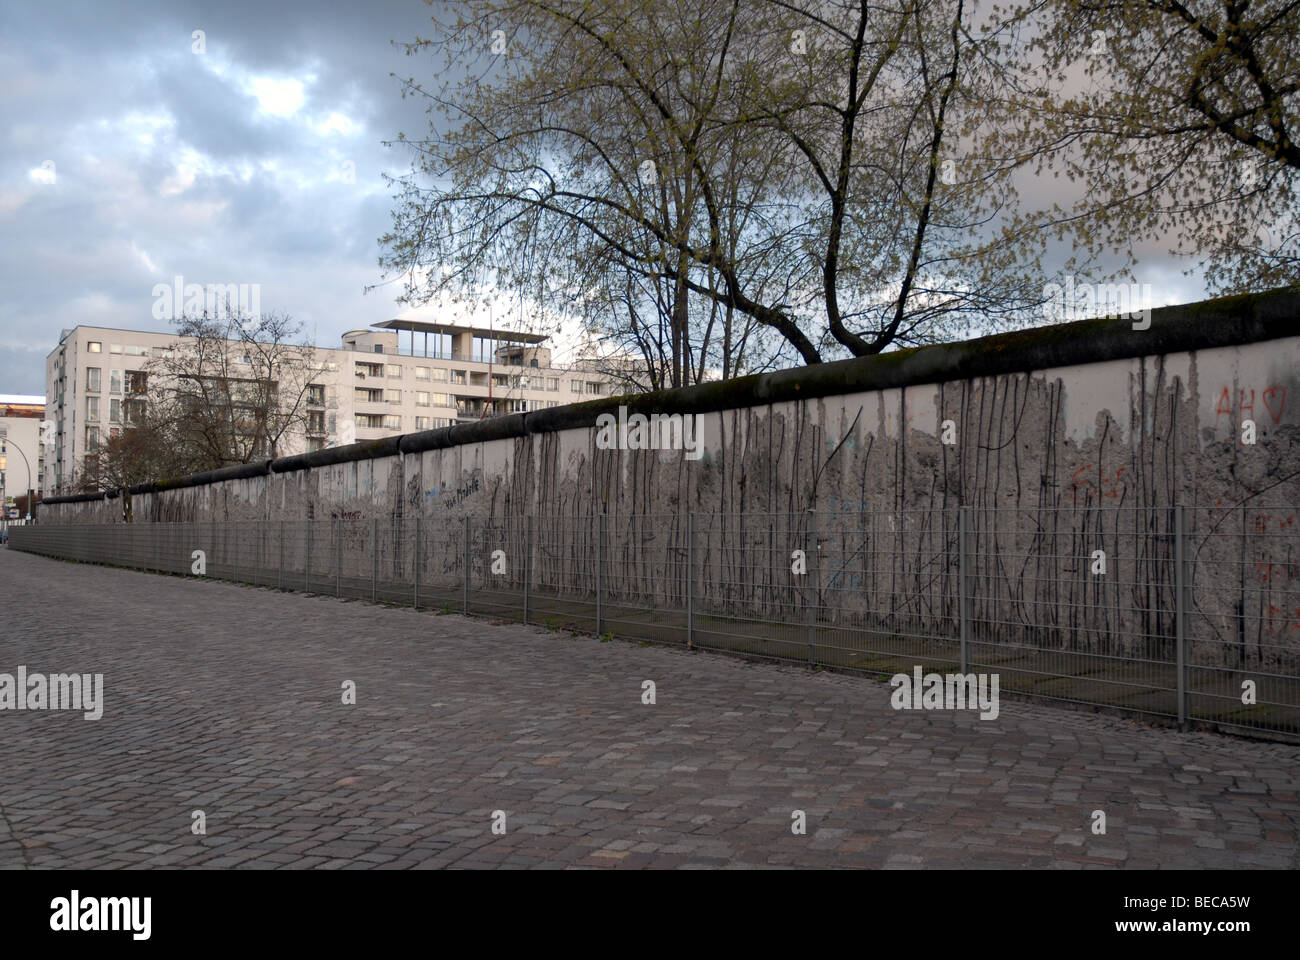 Preserved section of the Berlin Wall on Niederkirchnerstrasse, formerly Prinz-Albrecht-Strasse, Berlin, Germany. - Stock Image